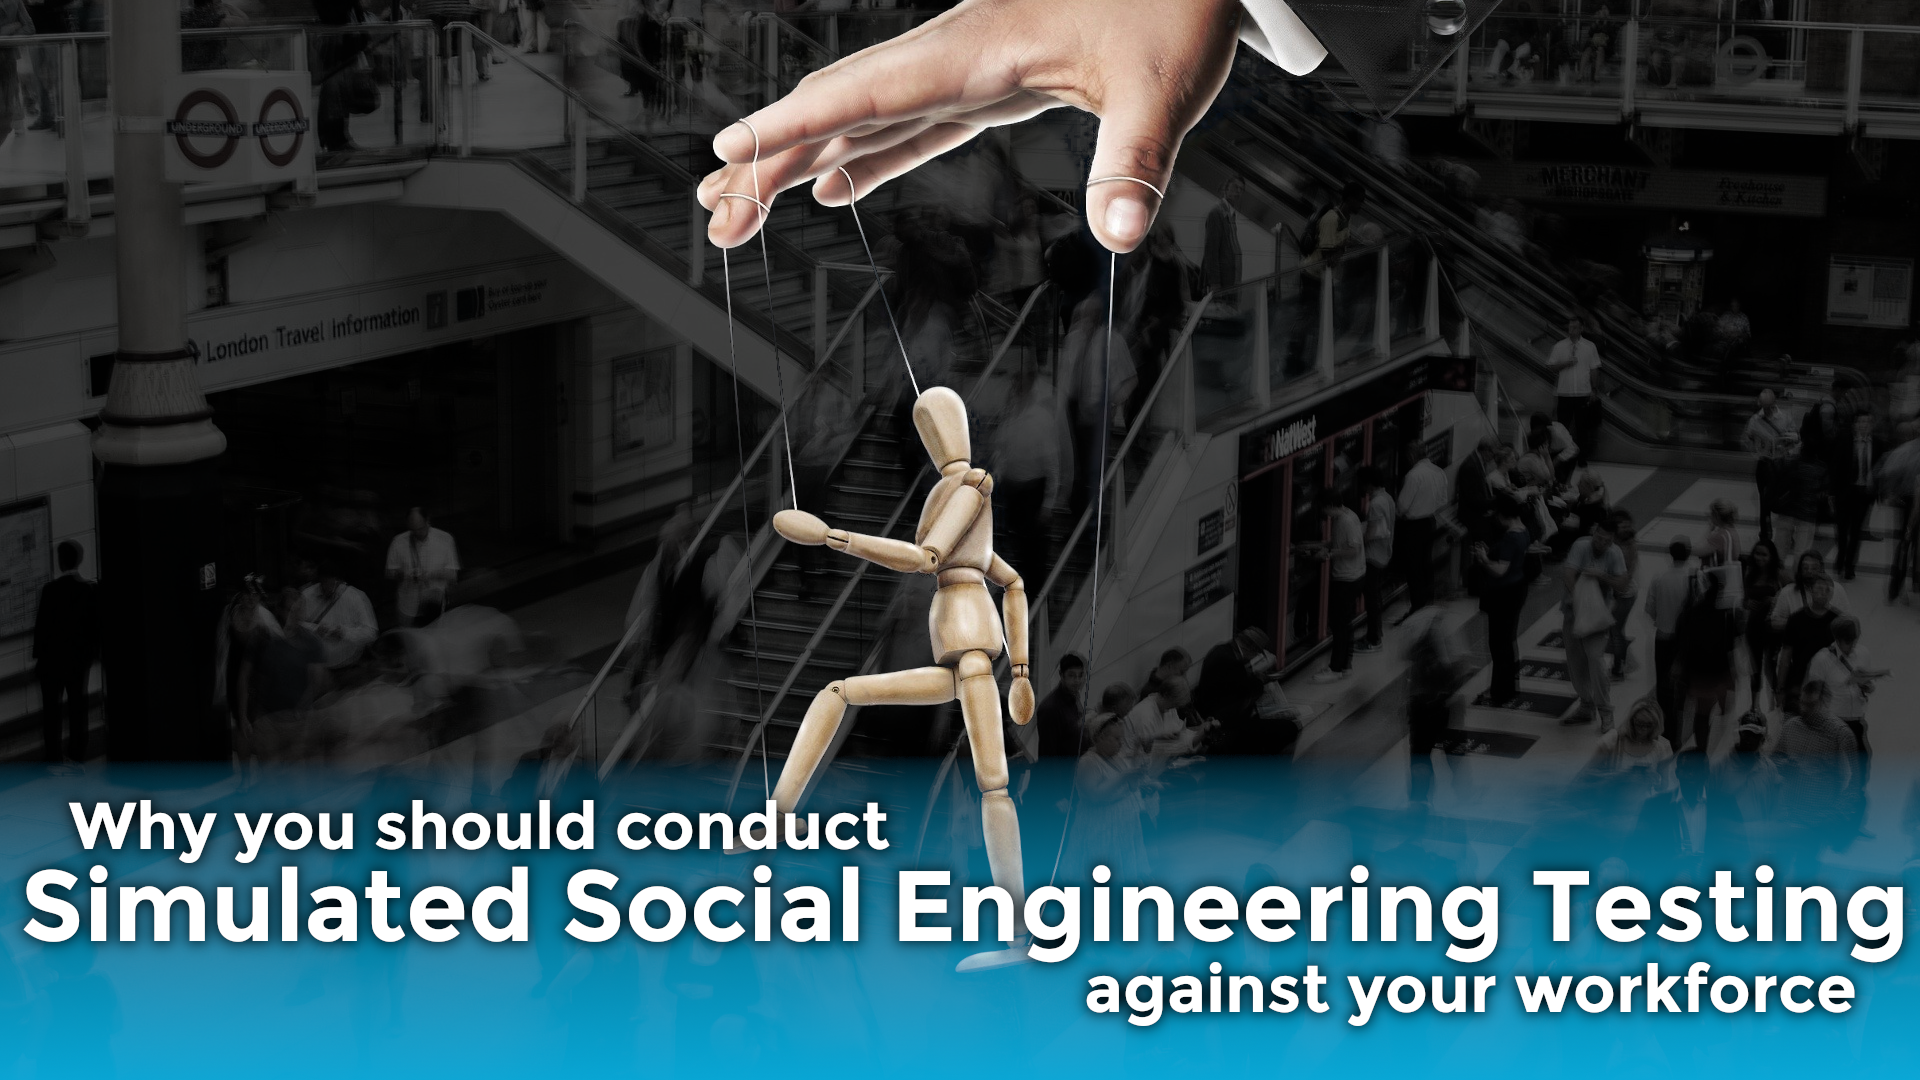 Why you should deploy Simulated Social Engineering Testing against your workforce